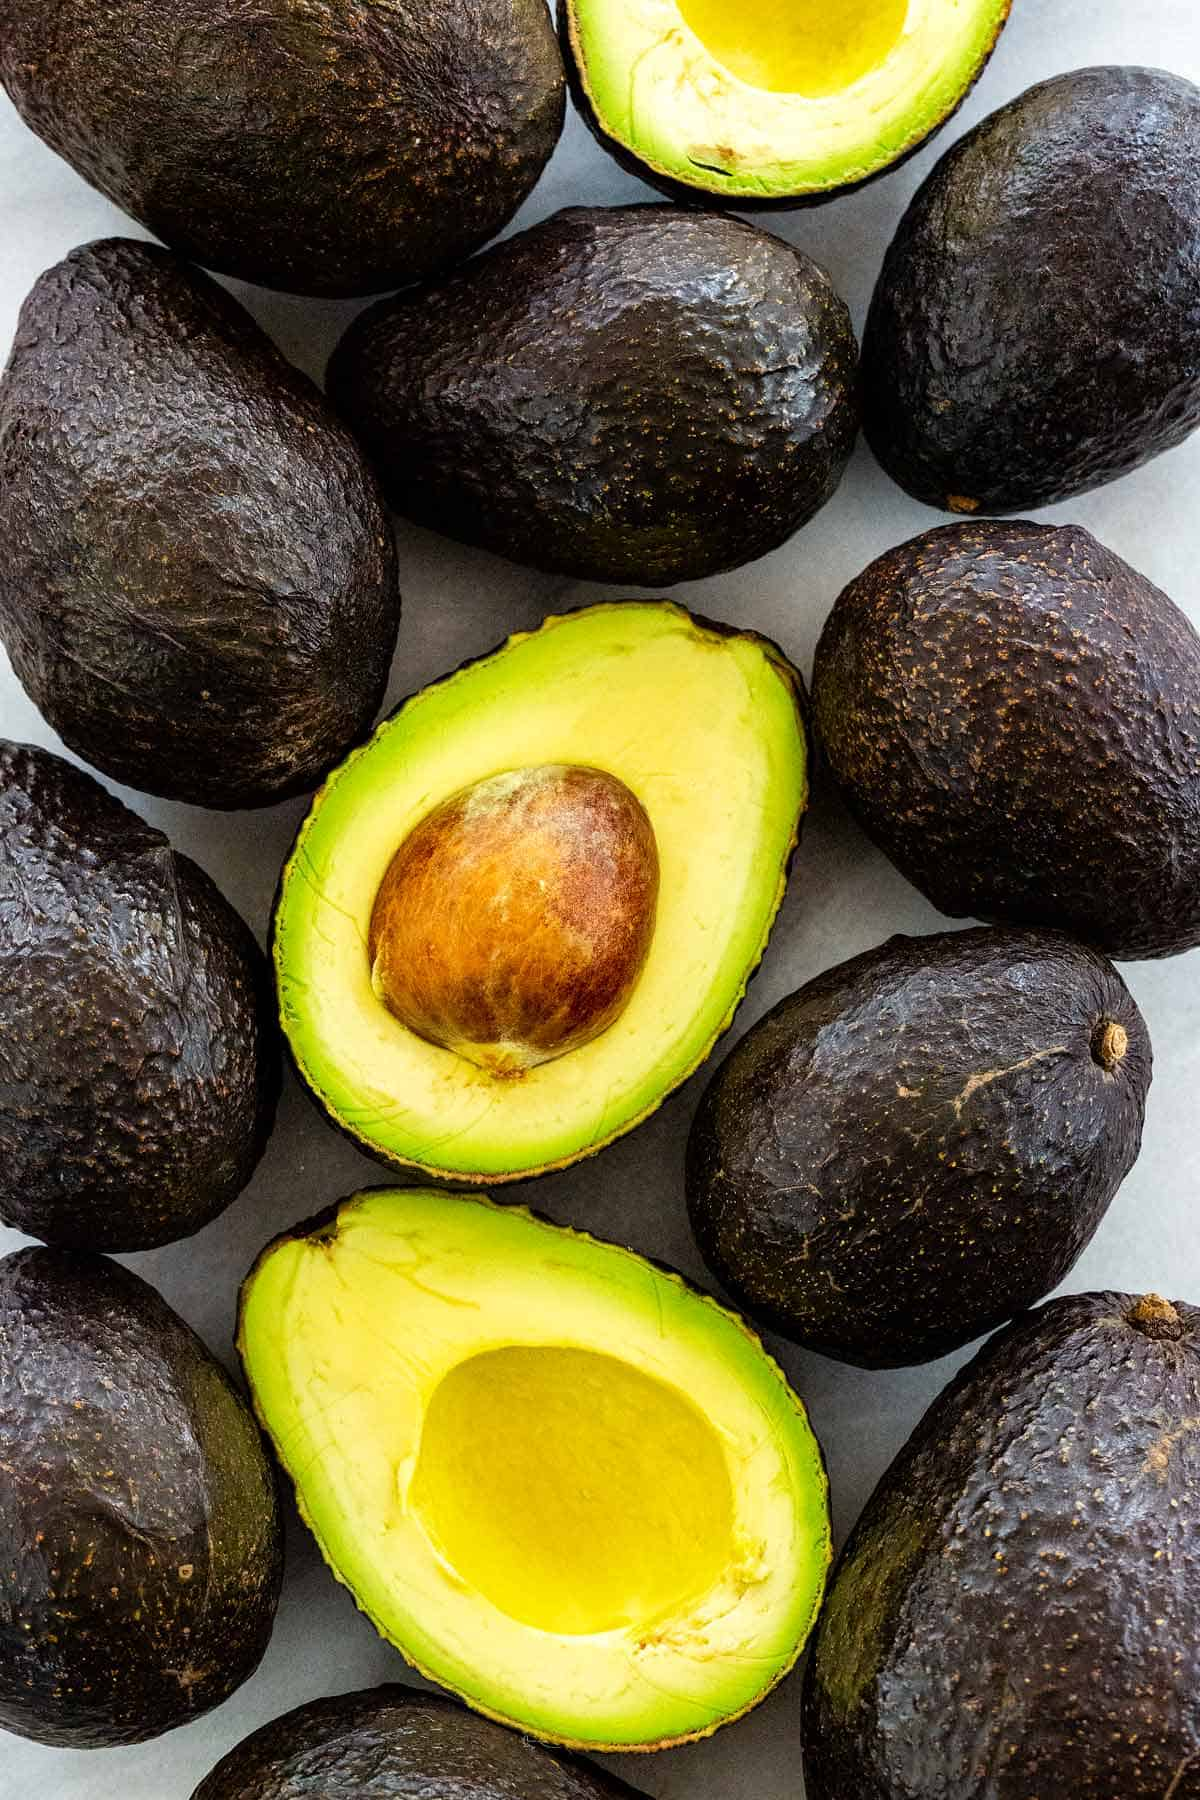 Meet the noble avocado and learn about all its nutritional superpowers; the delicious benefits of avocados just don't stop. #avocado #haas #avocadooil